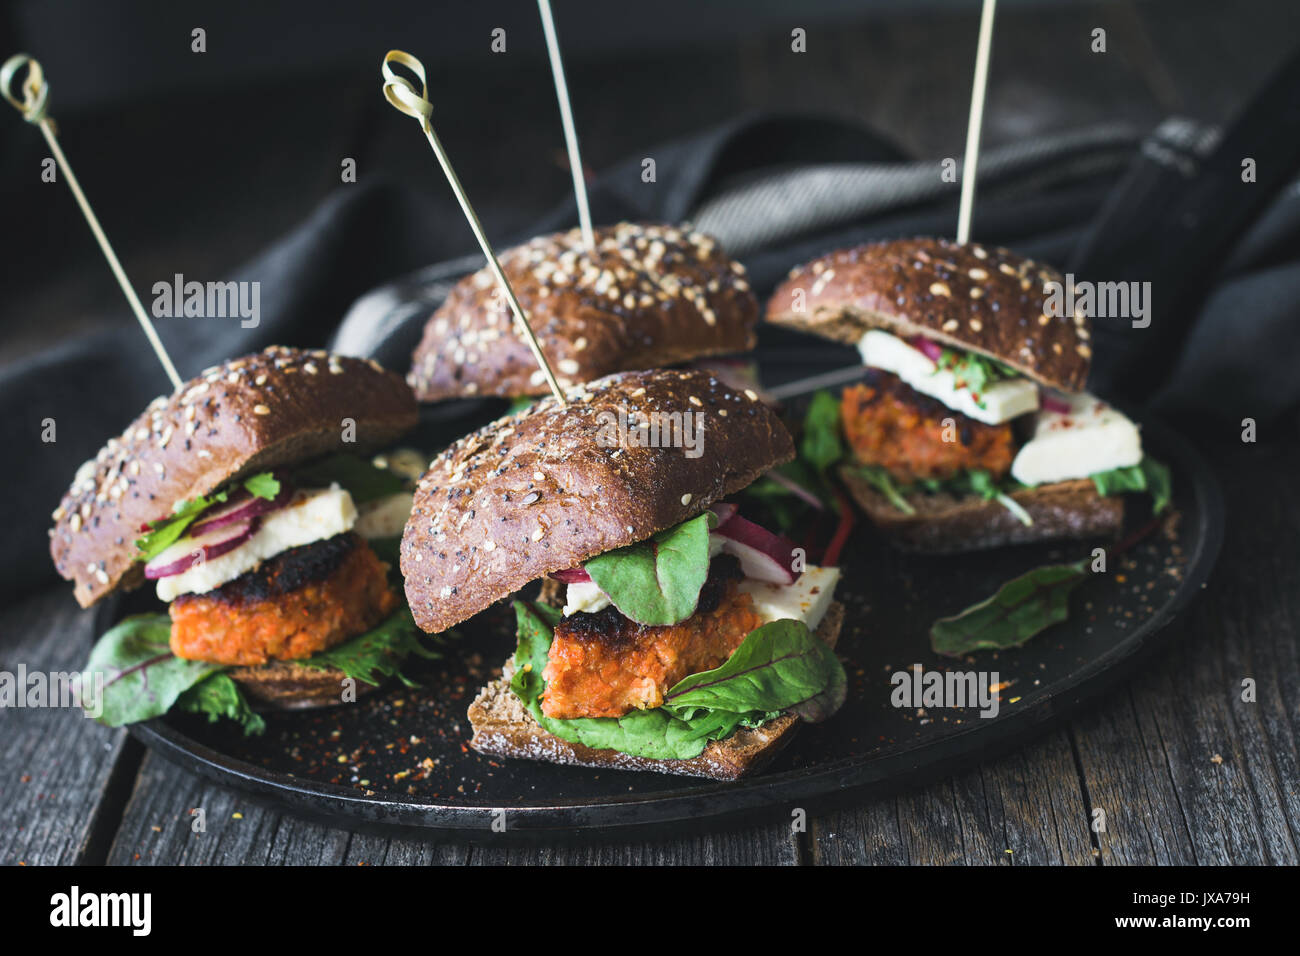 Vegetarian tofu carrot burger sliders served on iron skillet. Closeup view, toned image - Stock Image